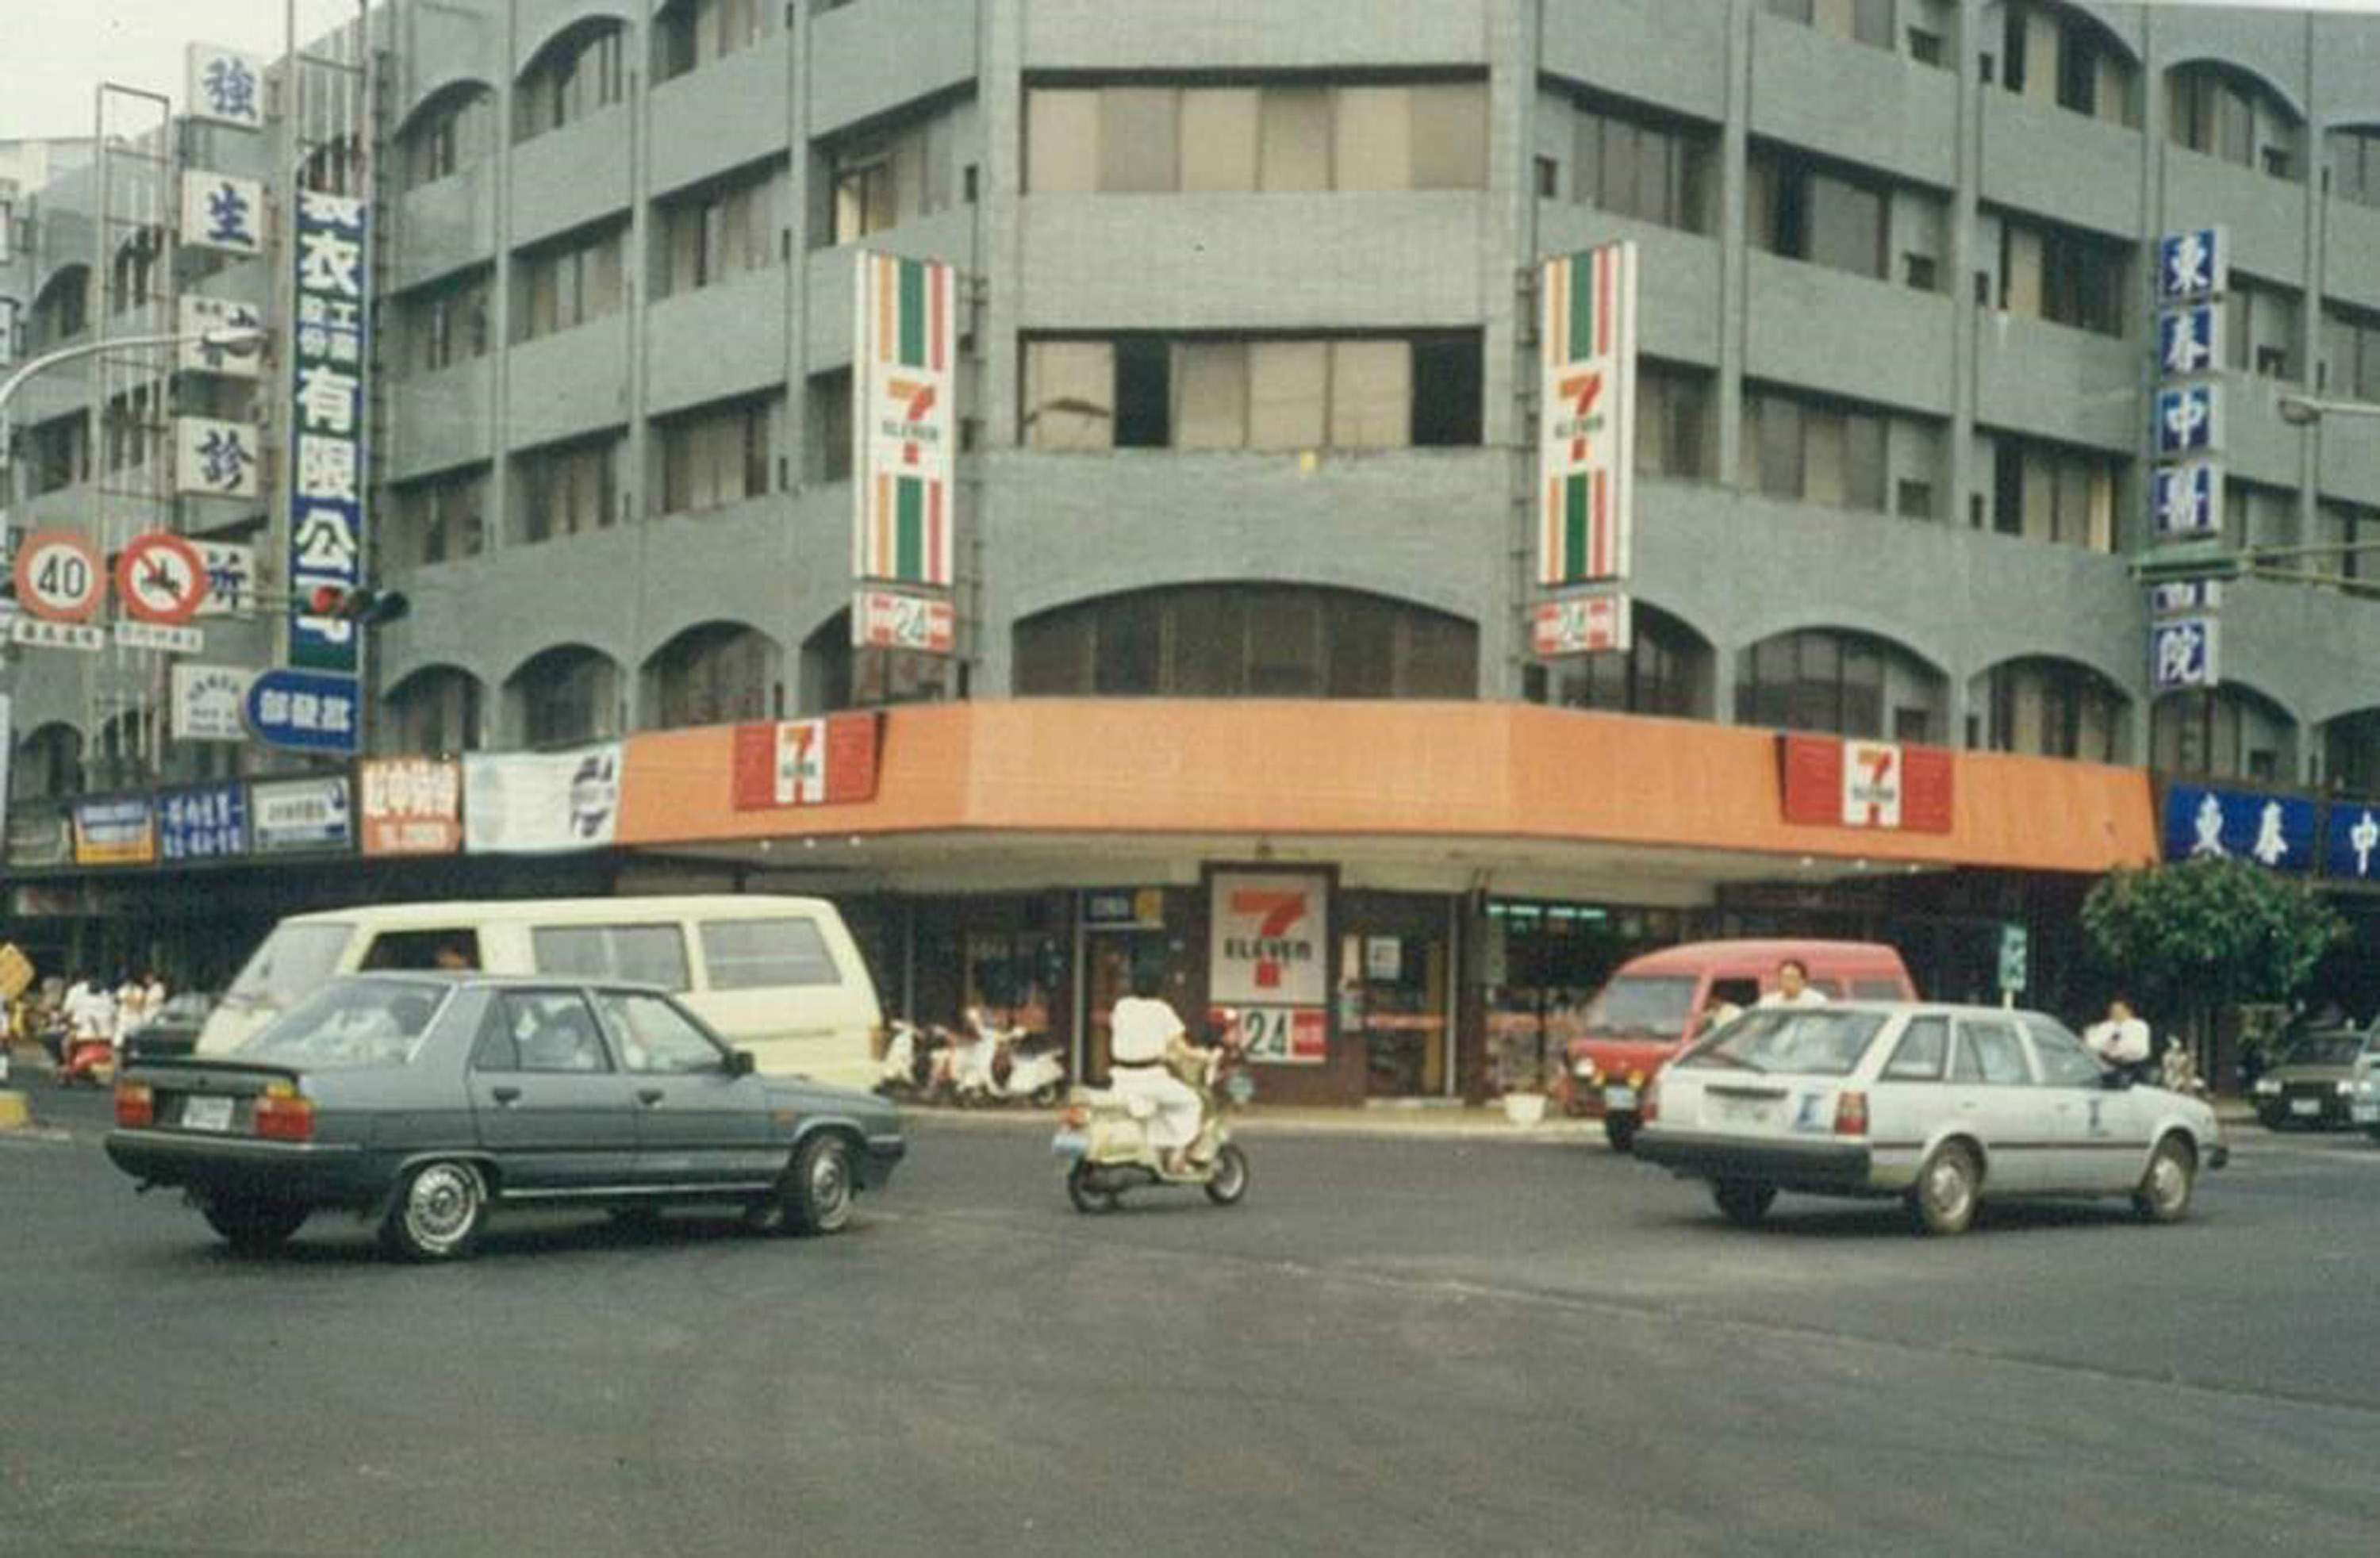 7-ELEVEN celebrates 40 in Taiwan this year.